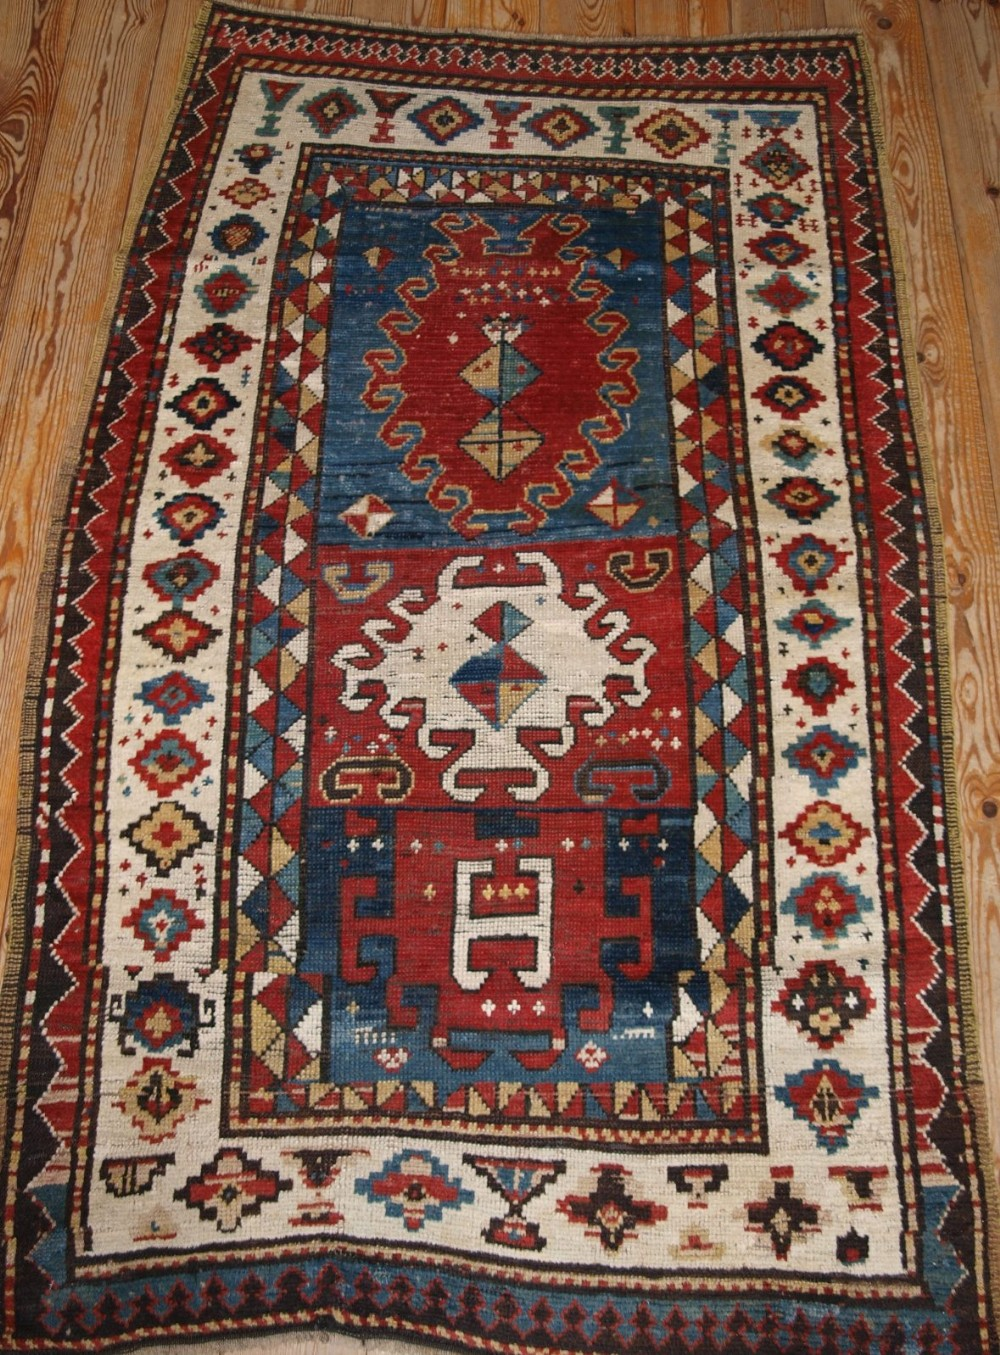 Antique Caucasian Bordjalou Kazak Rug Of Abstract Design